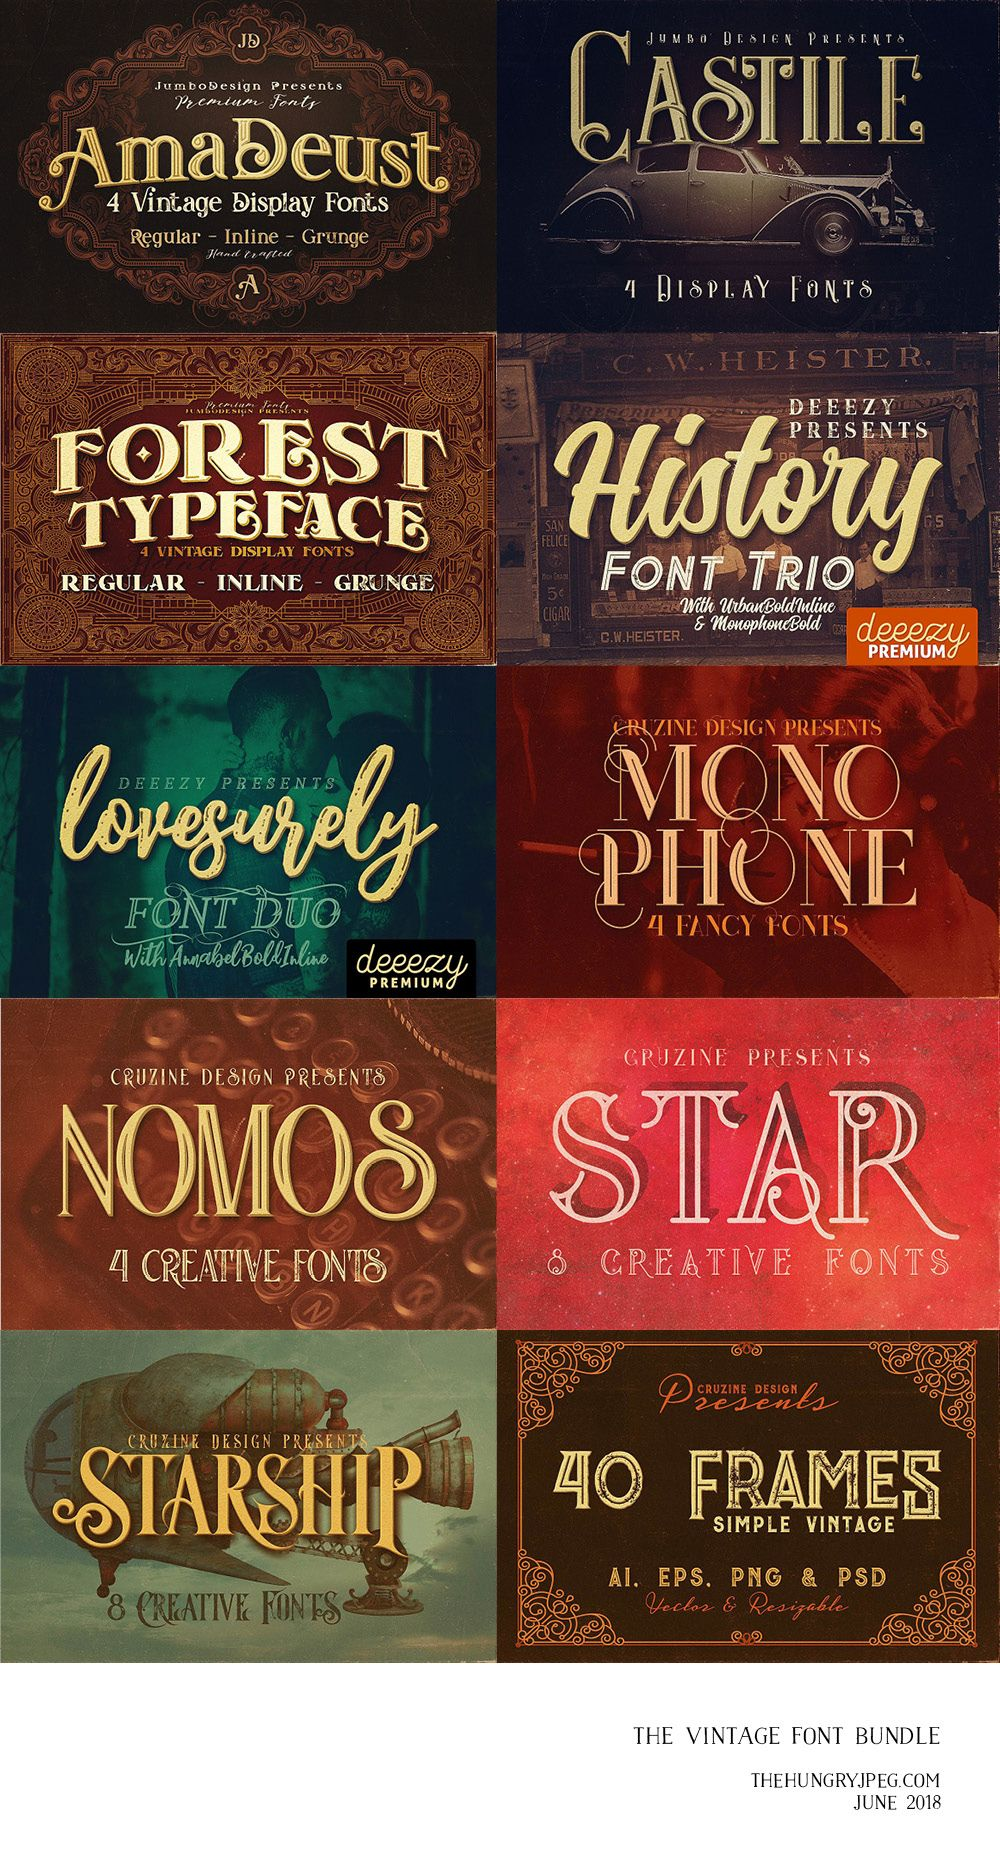 Download The Vintage Font Bundle by TheHungryJPEG | TheHungryJPEG ...